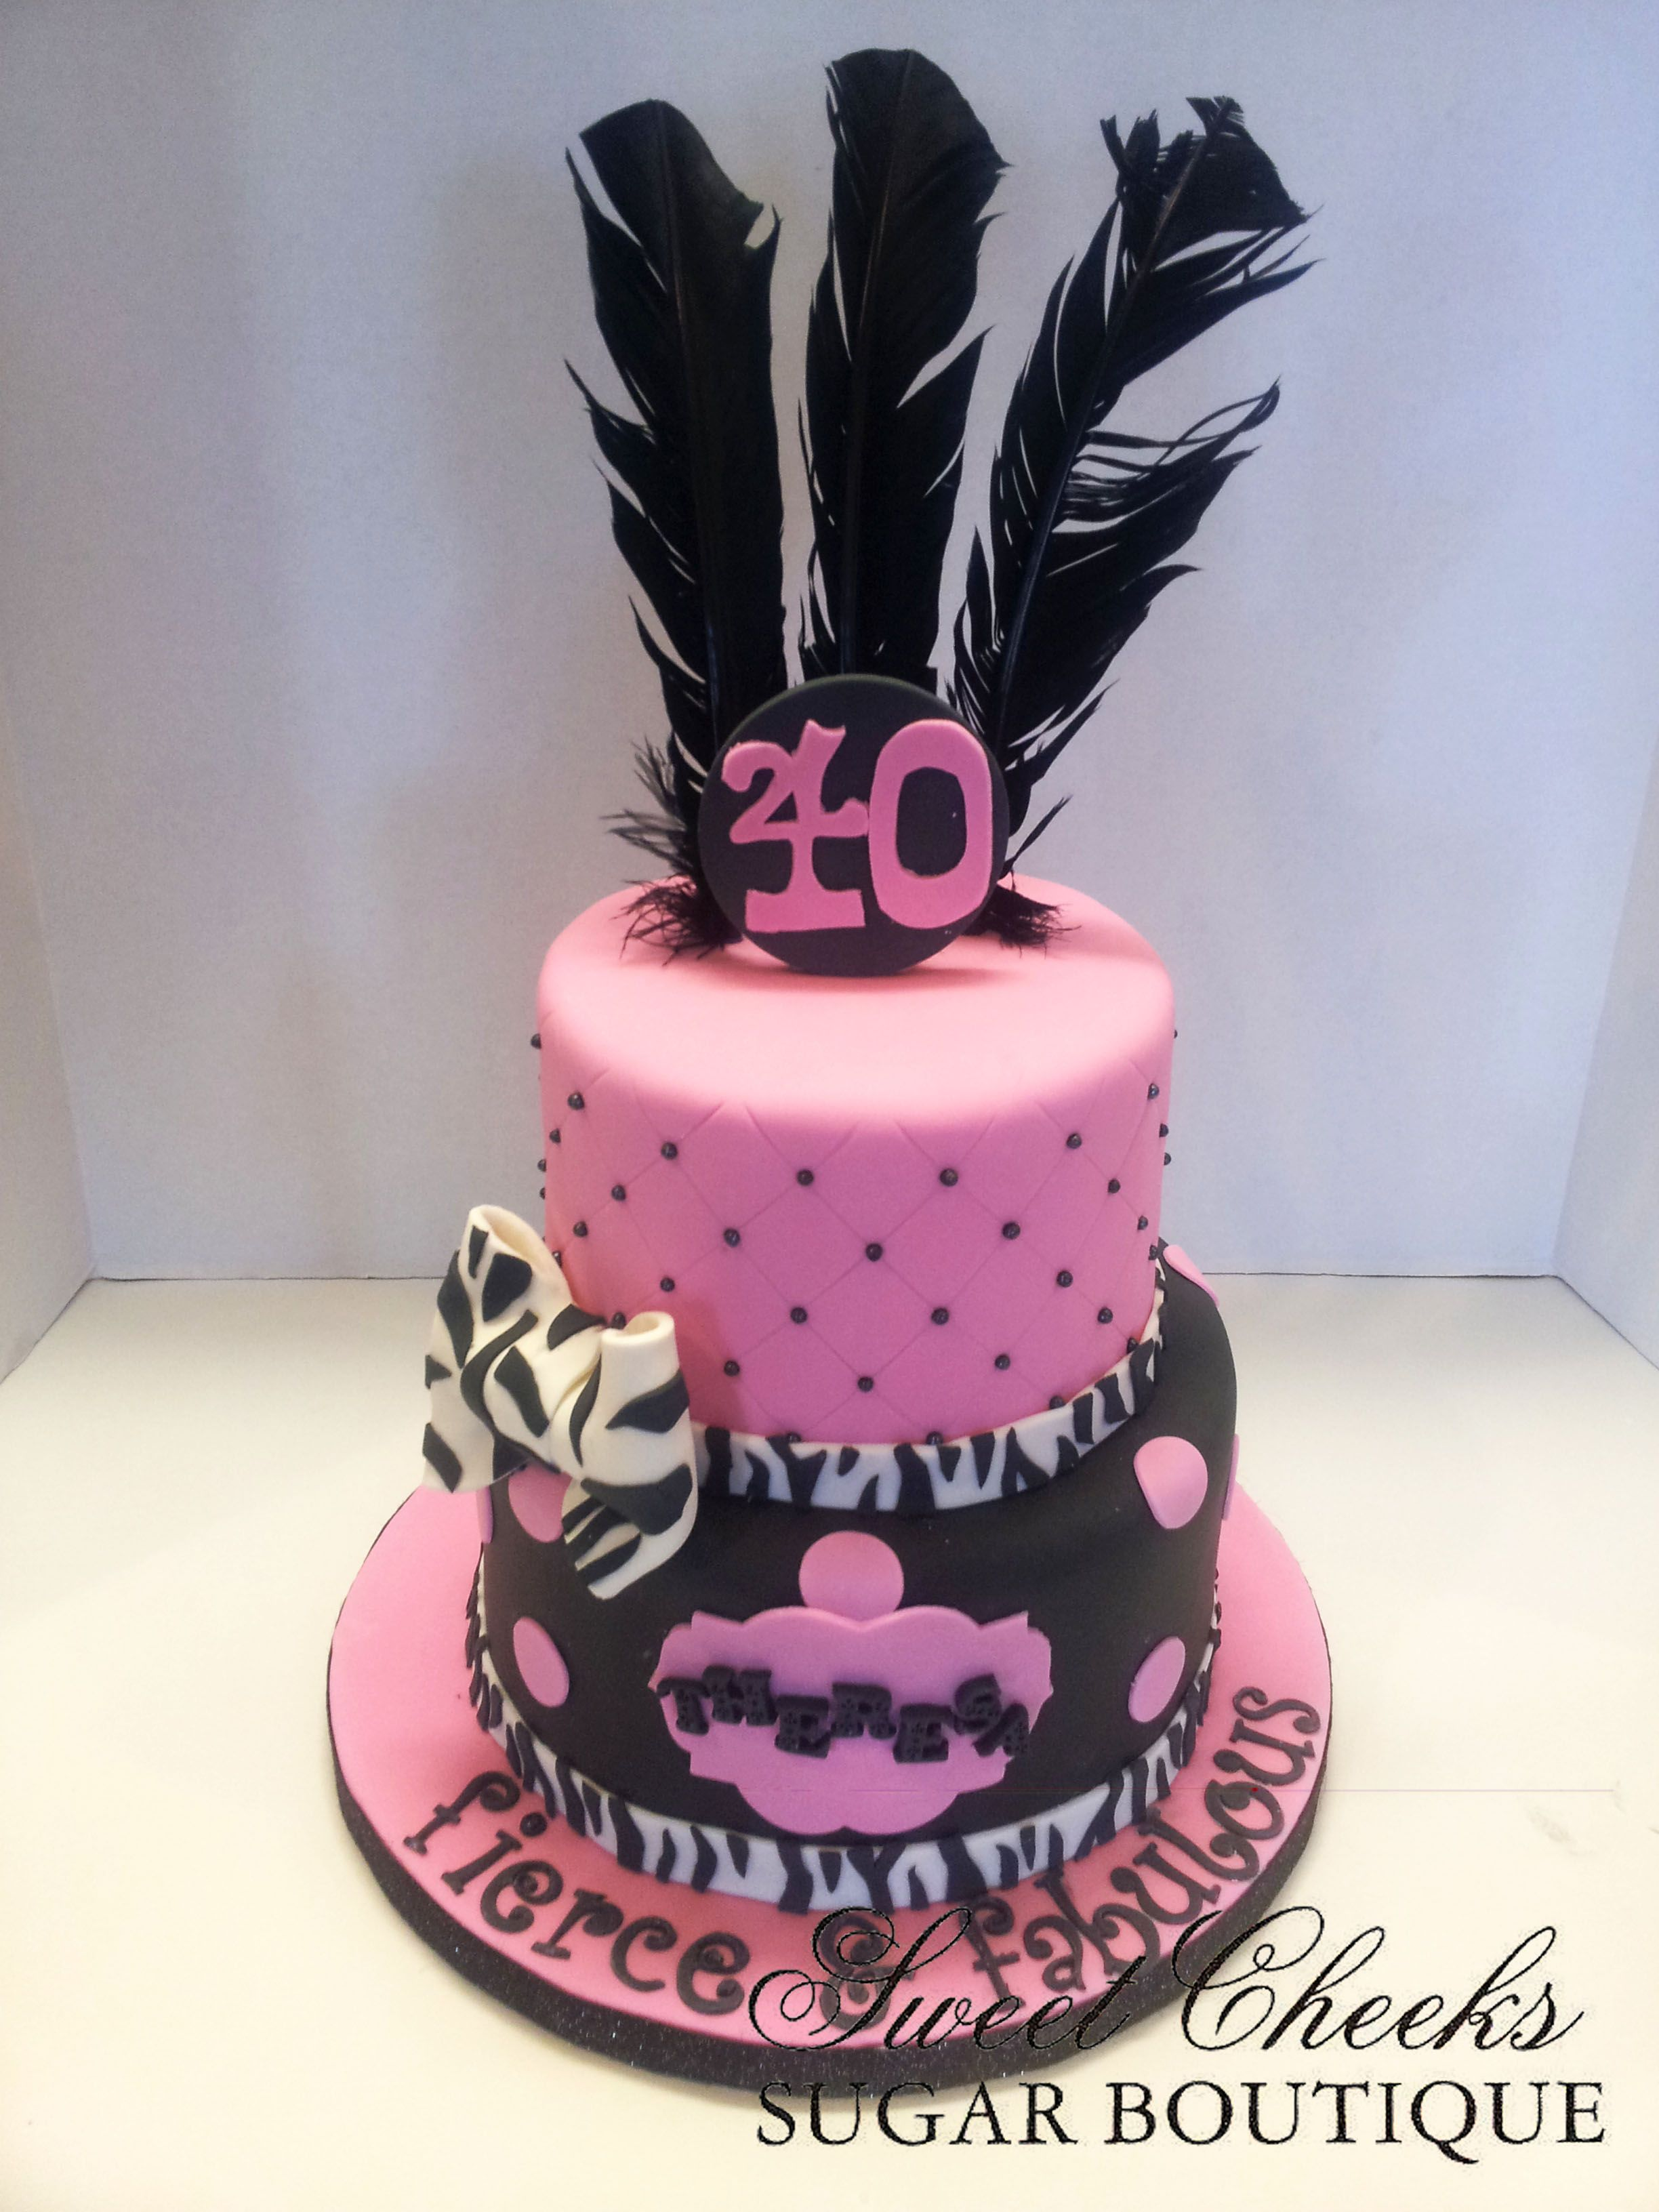 Astonishing 40 And Fabulous Cake Slubne Suknie Info Personalised Birthday Cards Cominlily Jamesorg